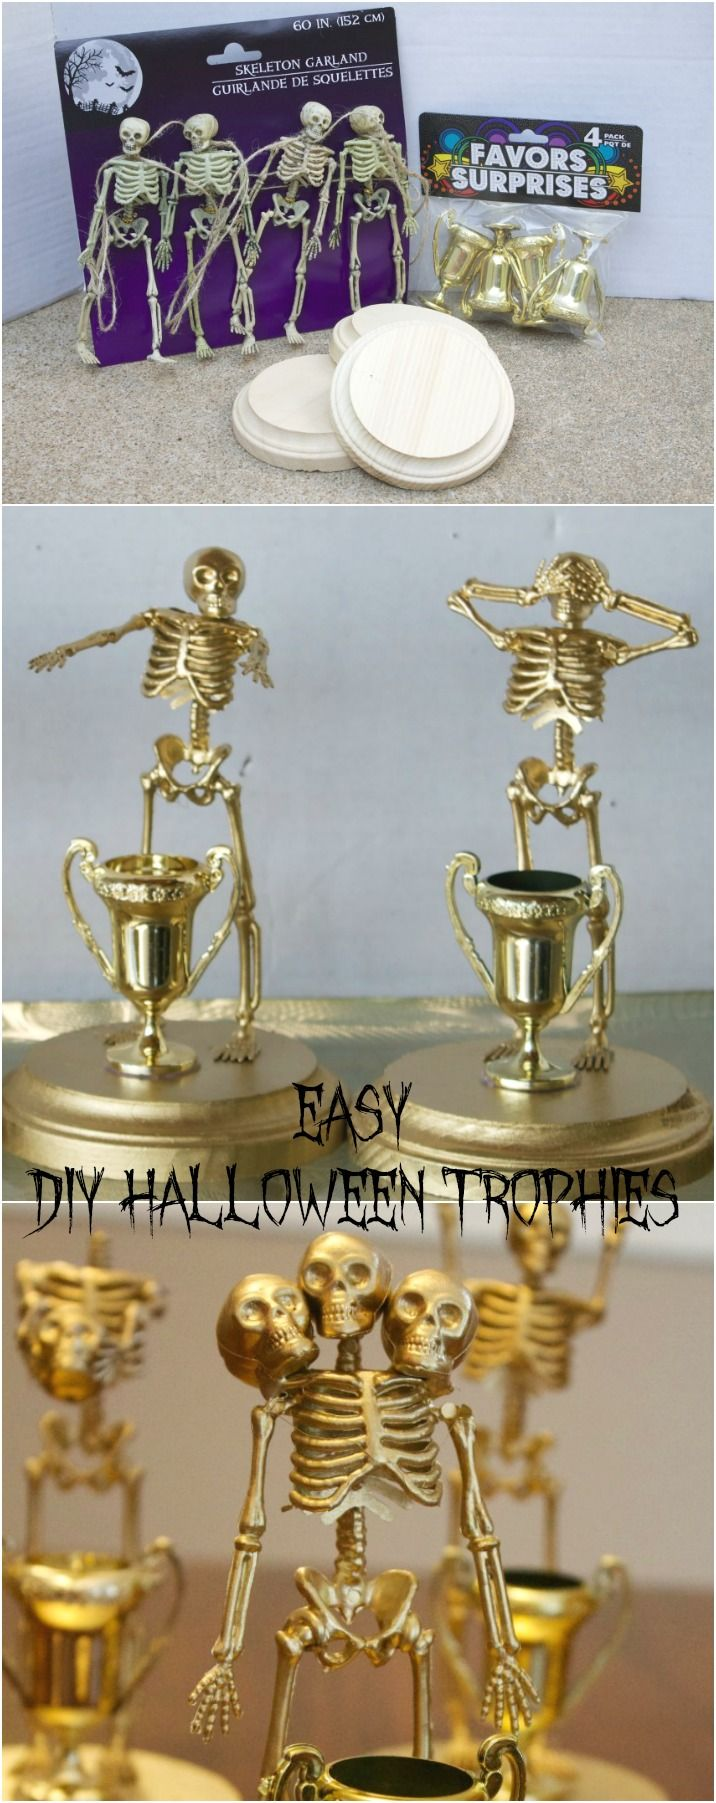 25 DIY Halloween Decorating Ideas for Kids on a Budget   Toilet ...